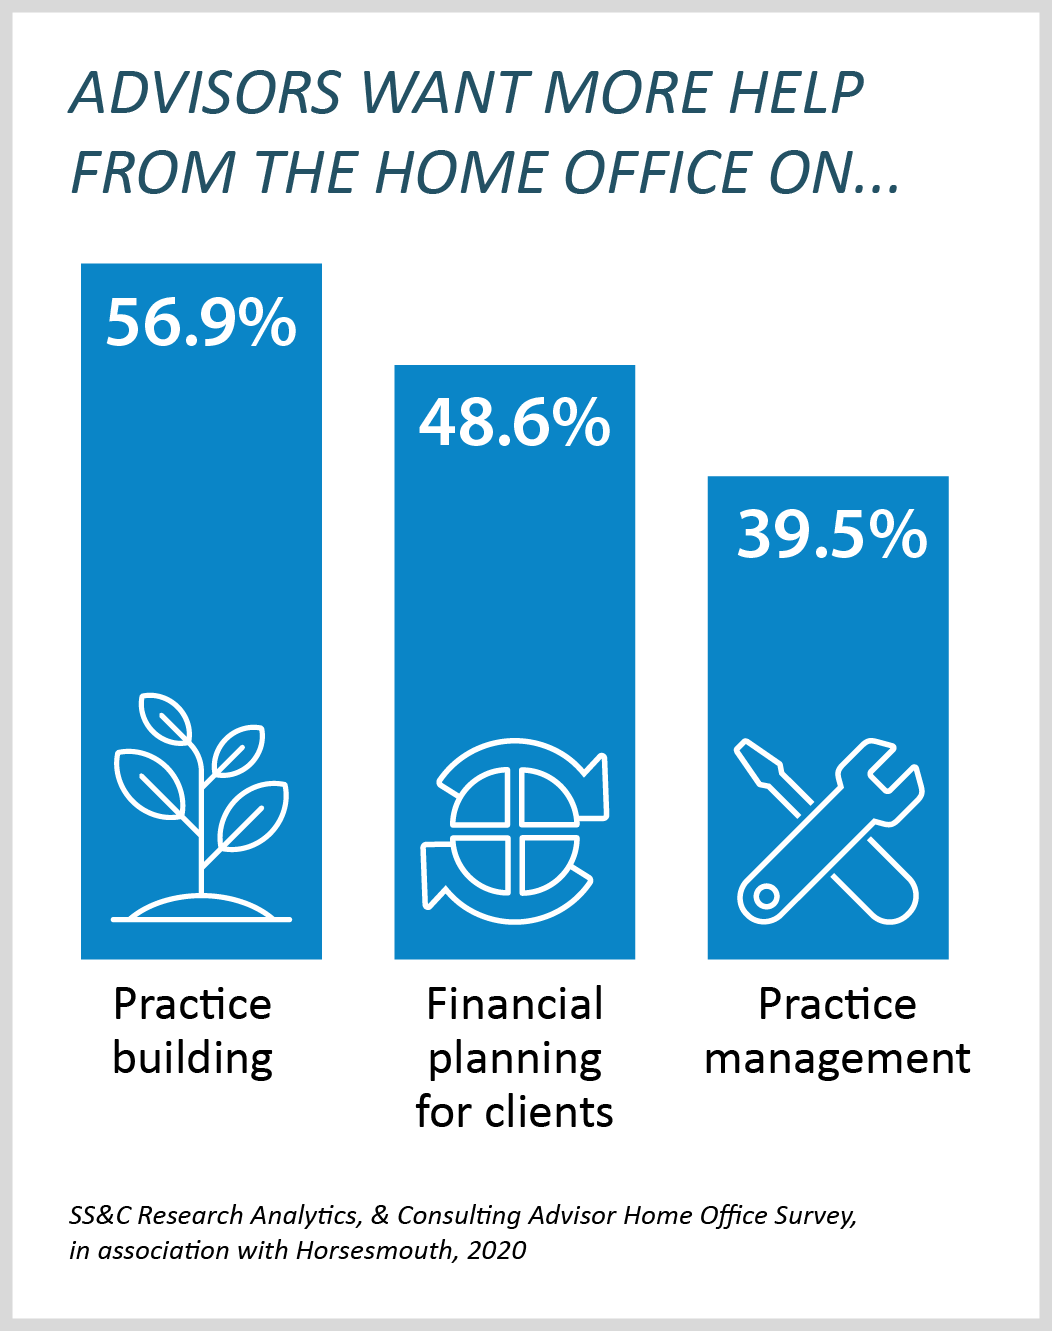 Chart shows areas where advisors want more help from the home office